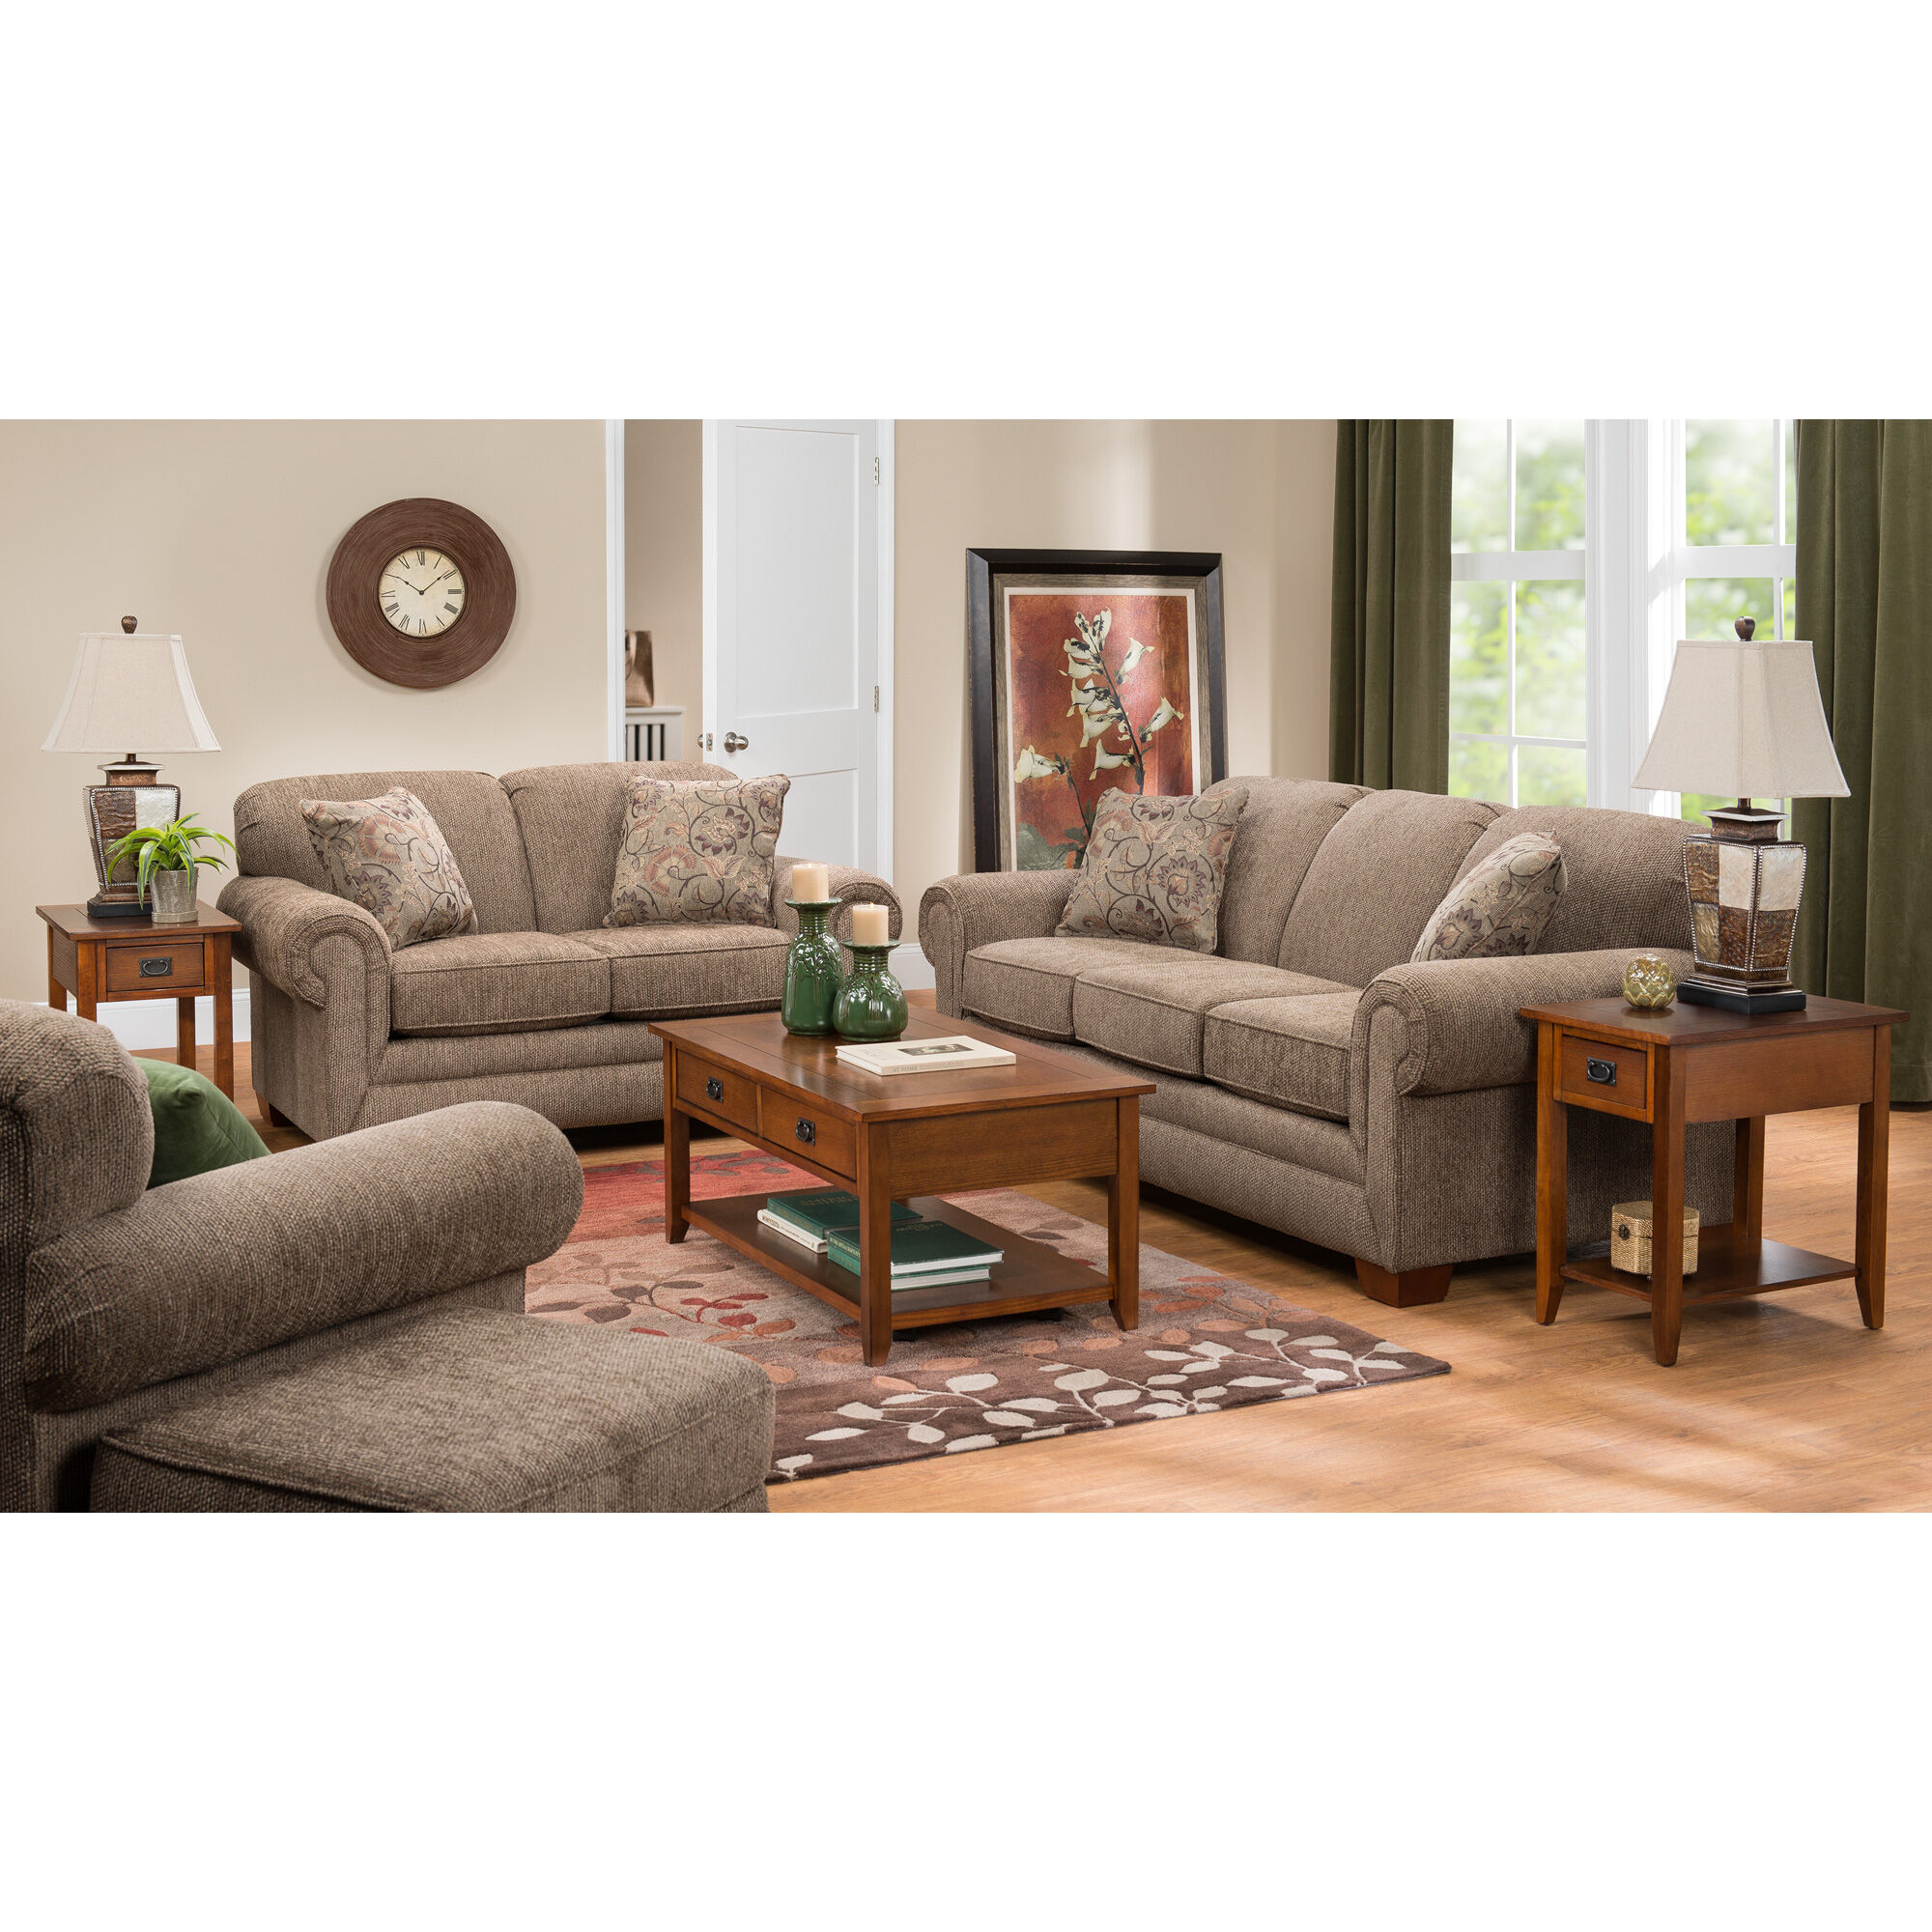 Slumberland Furniture  Tenor Brown Sofa